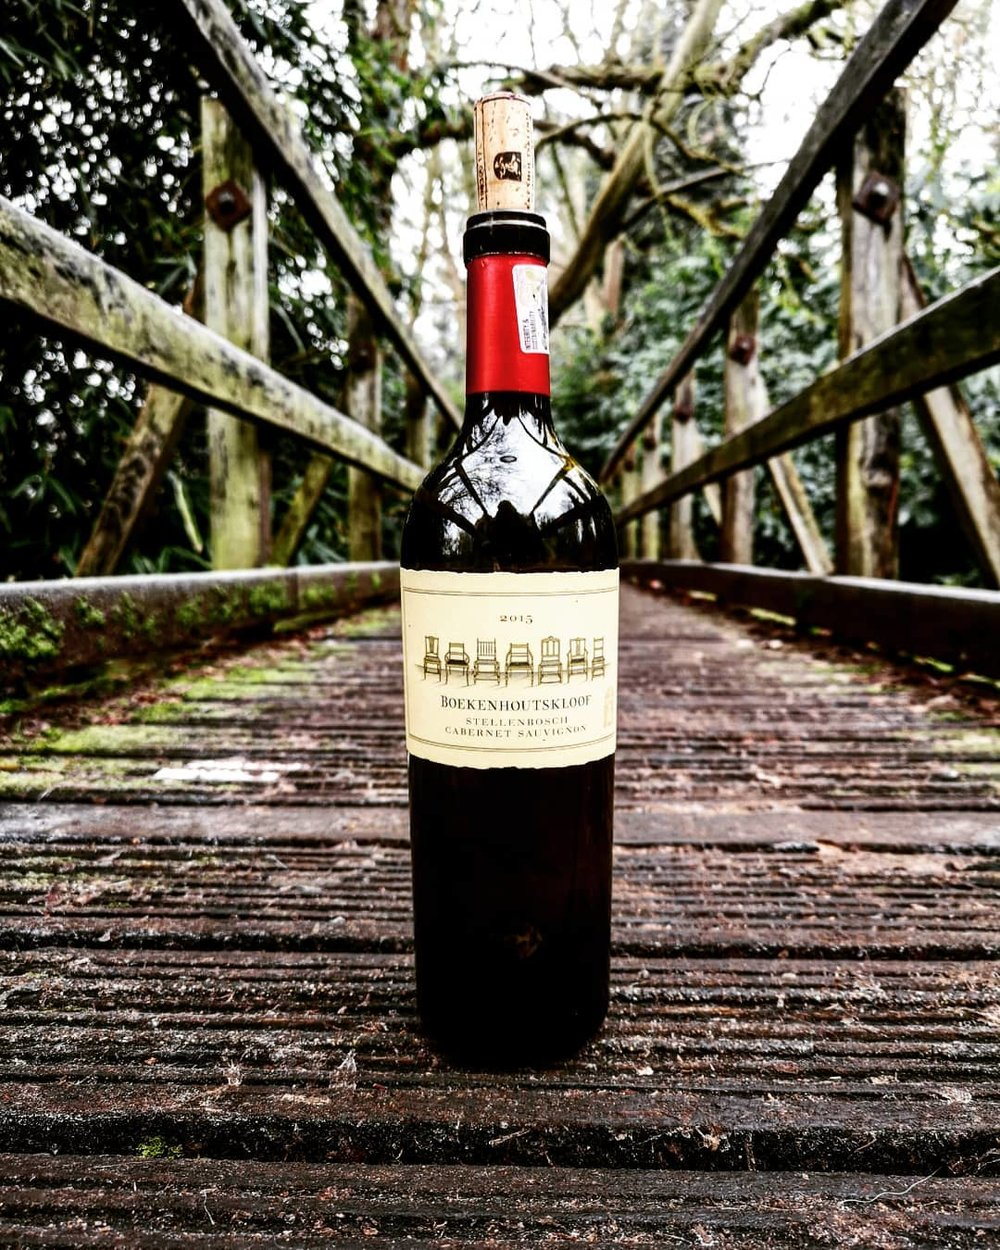 10 top South African wines worth seeking out